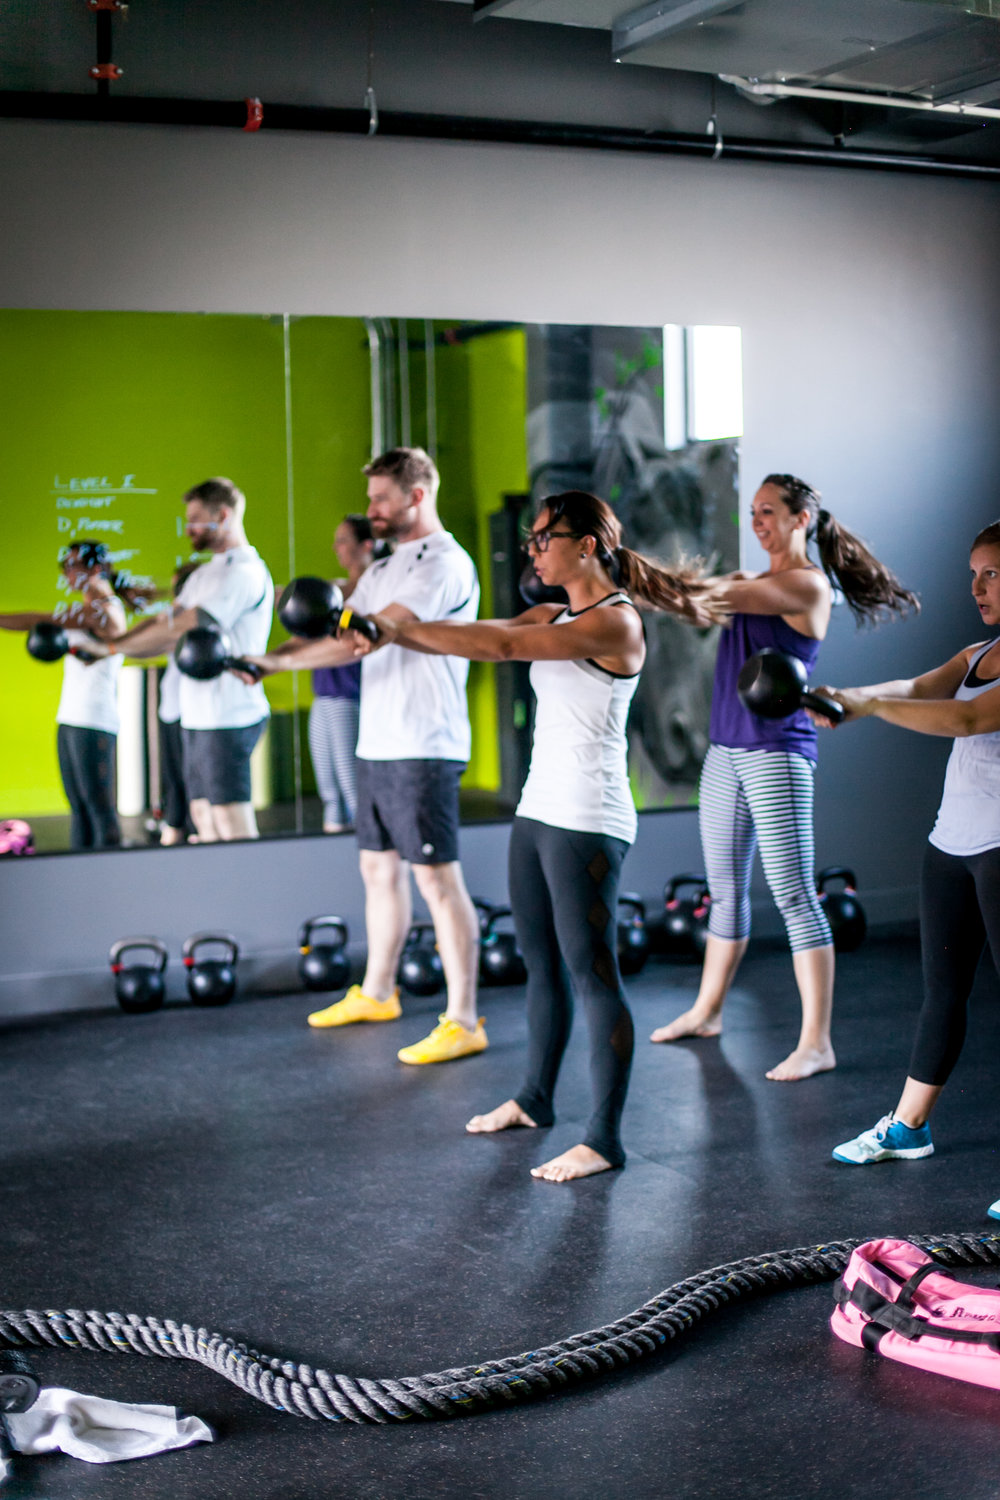 Meet our team! - All Kettlebell coaches are SFG or RKC certified instructors. This means that we value Kettlebell form and technique at the highest level!